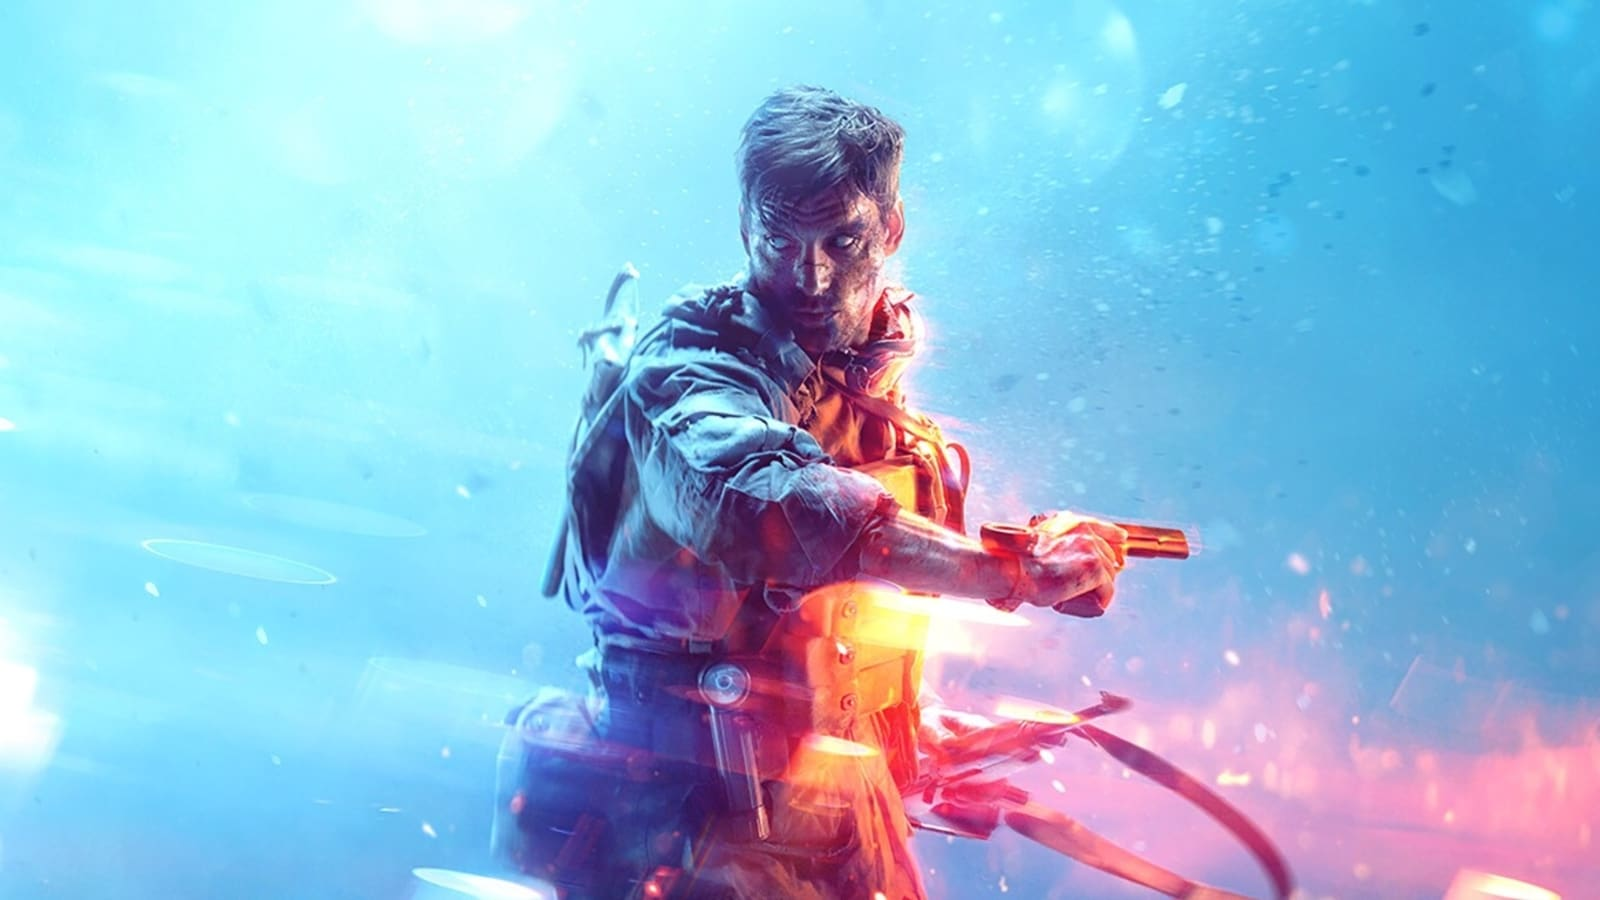 The former Call of Duty executive has now given a boost to the Battlefield series;  check out what's coming in 2021